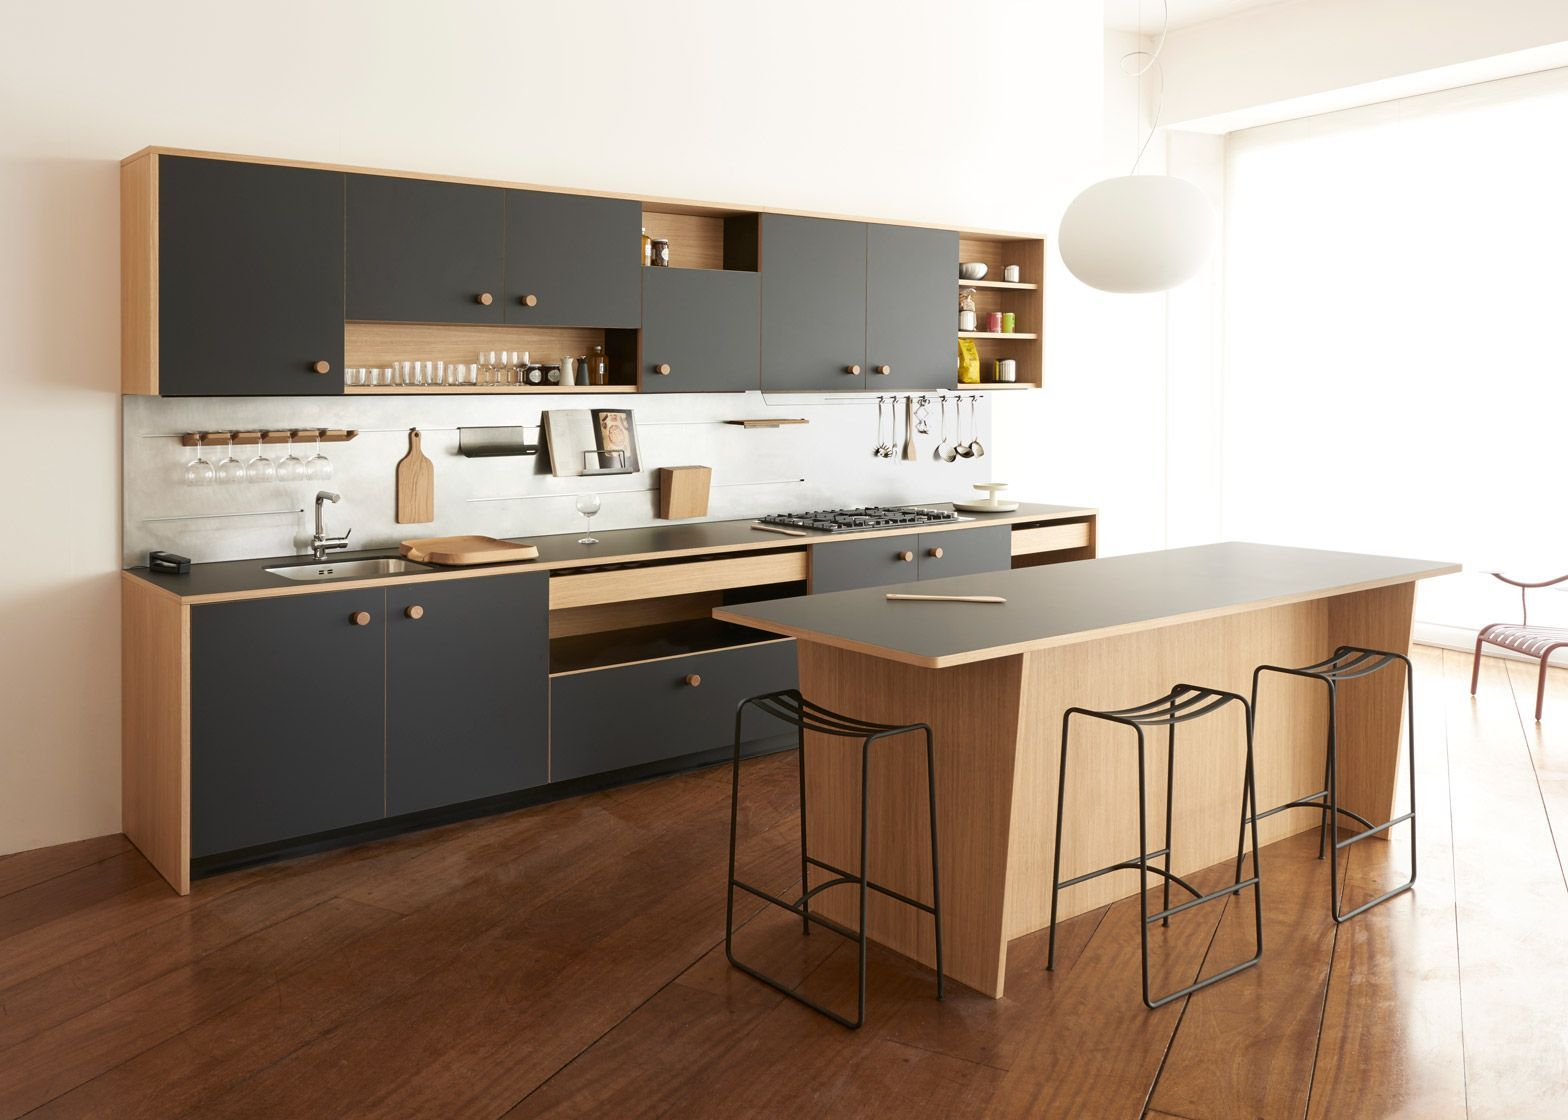 Best Trends in Kitchen Design Ideas for No Very Nice